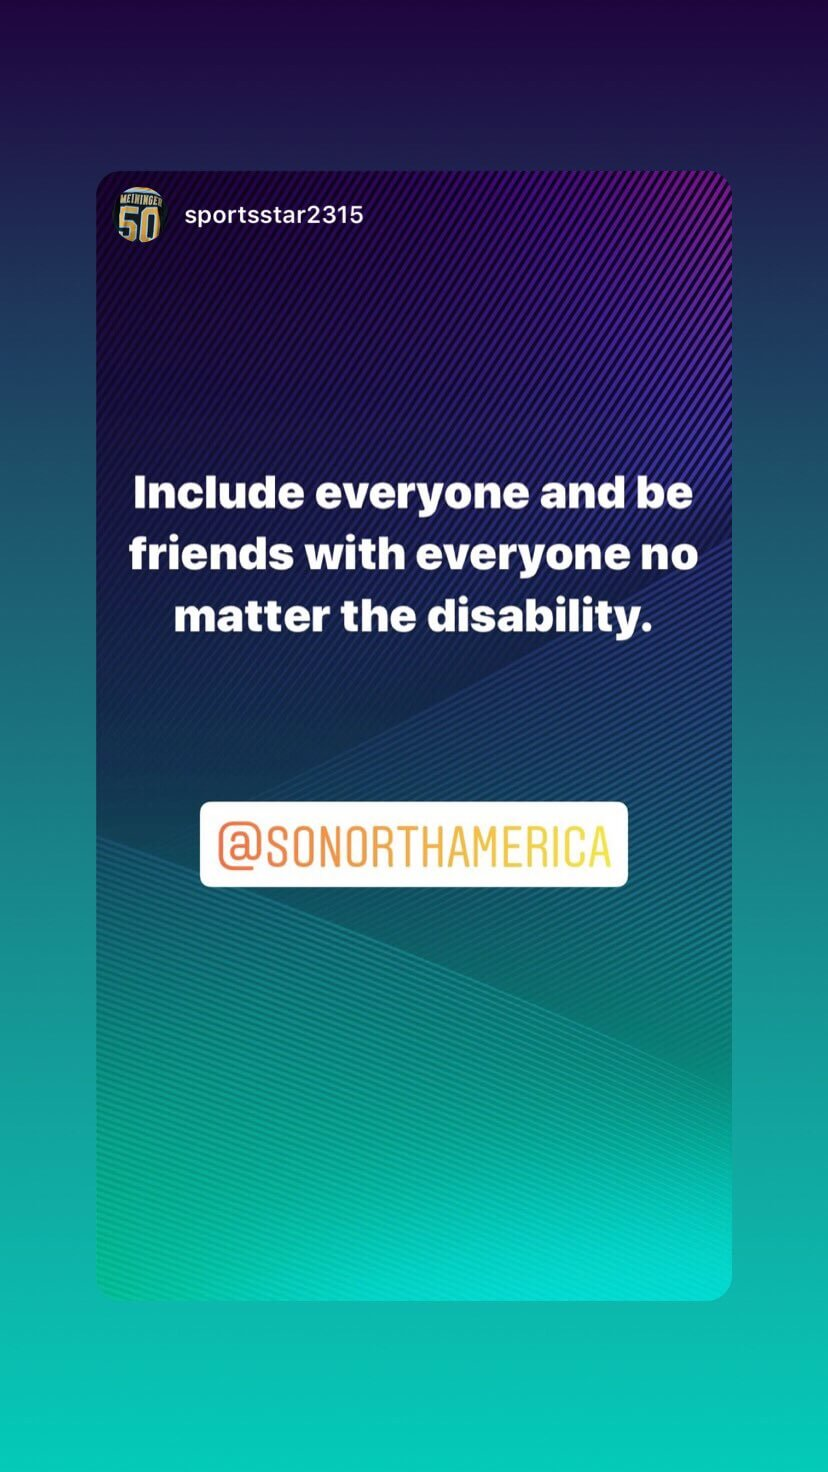 Include everyone and be friends with everyone no matter the disability.